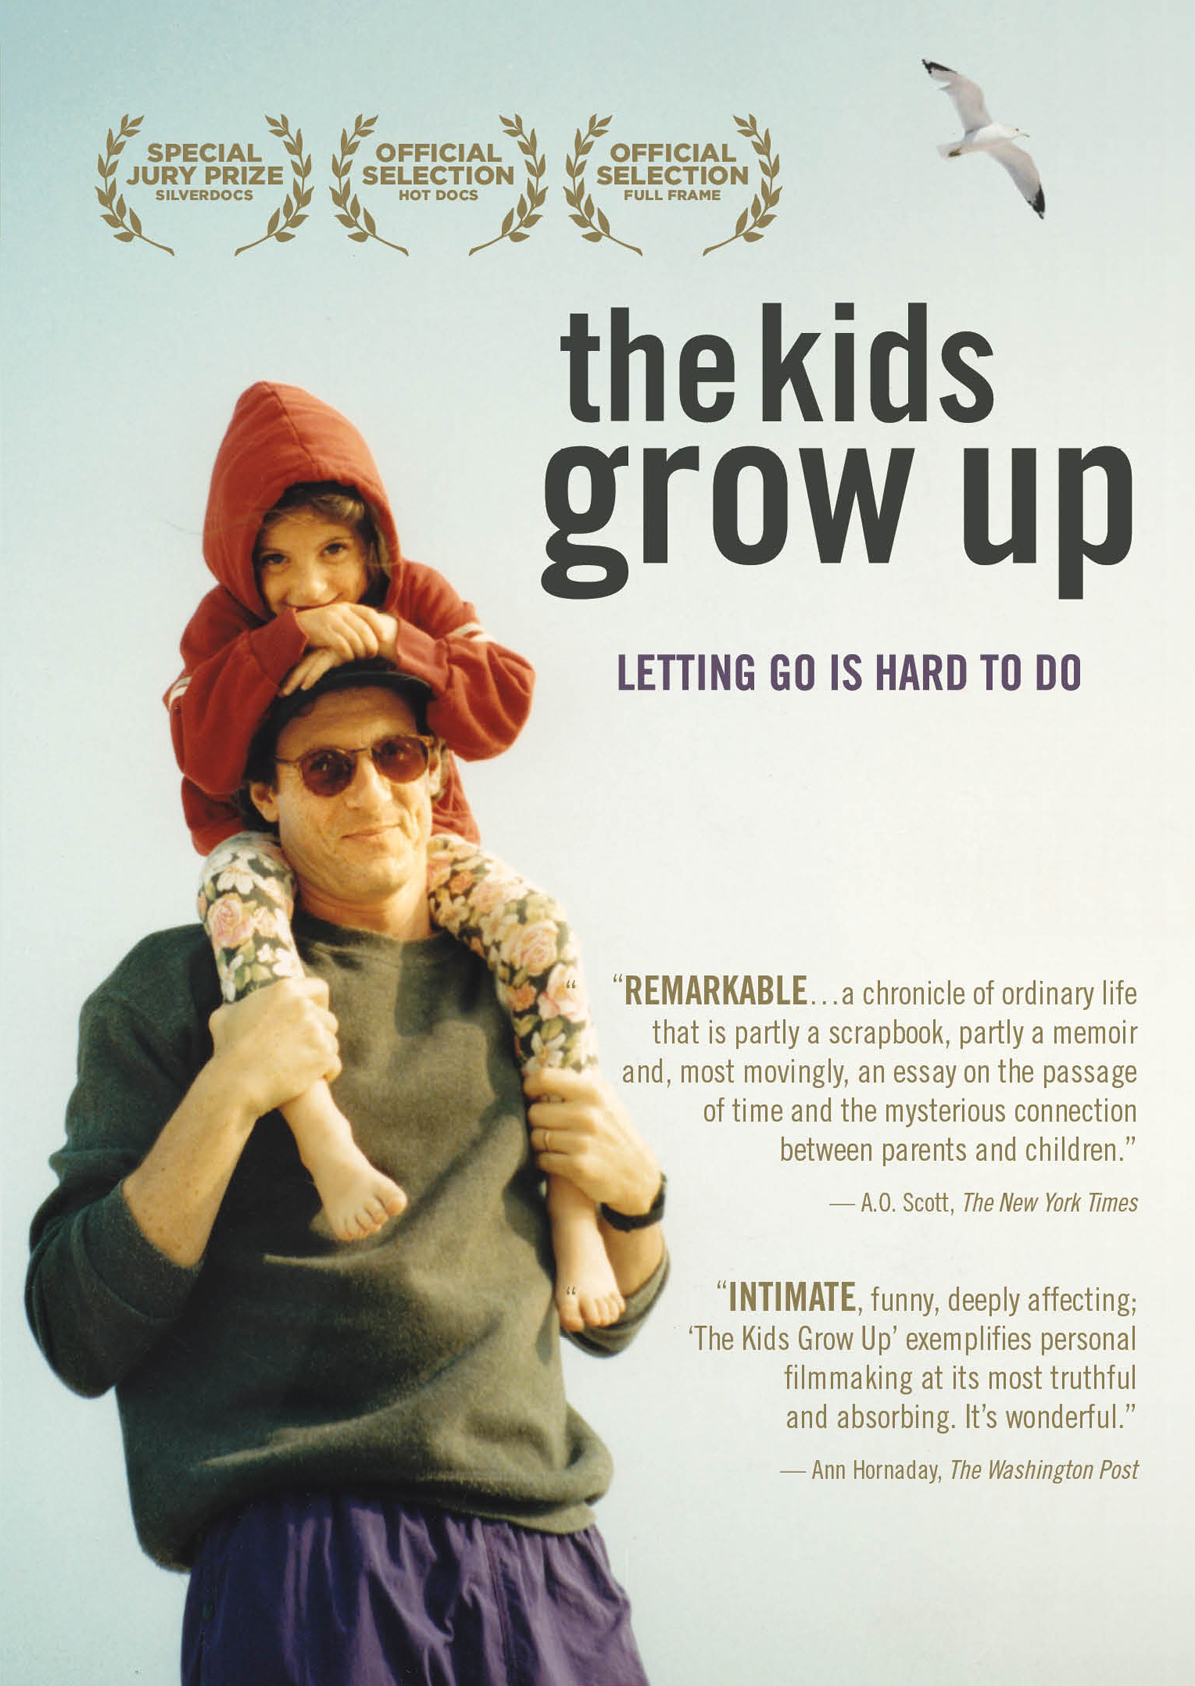 the kids grow up rdquo an intimate look at parenthood and the meaning ldquothe kids grow up rdquo an intimate look at parenthood and the meaning of ldquo